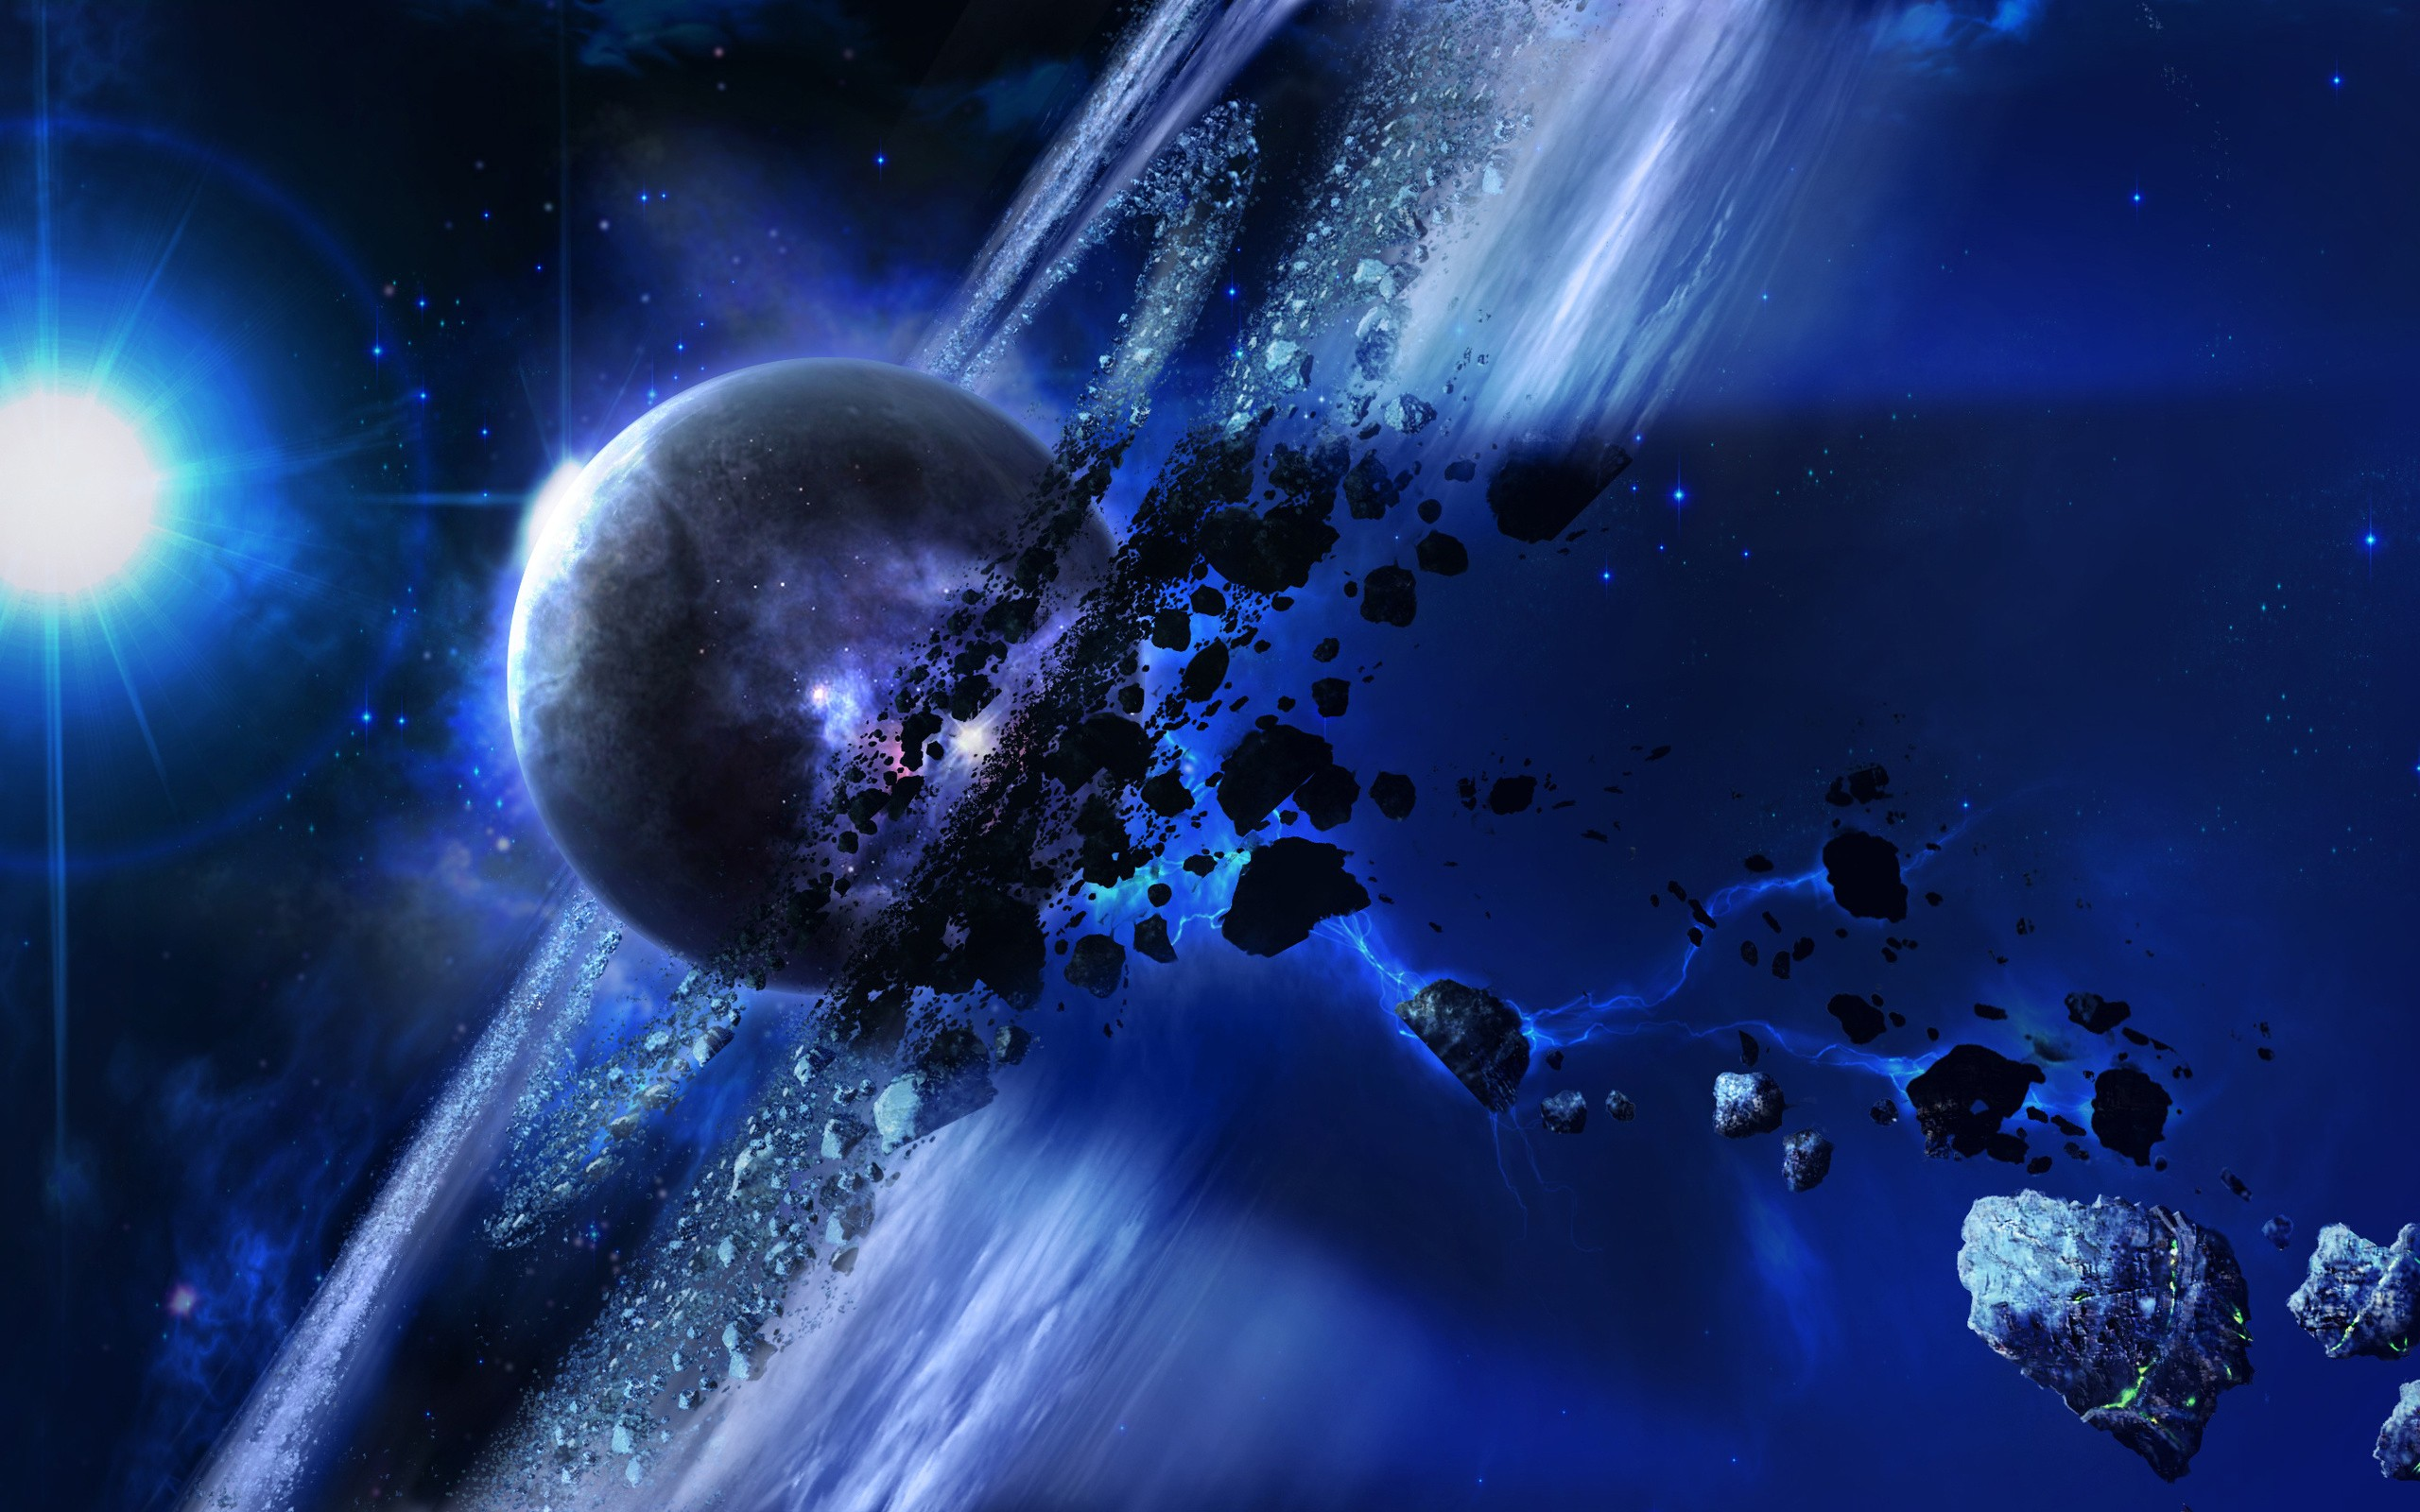 Outer space wallpaper planets wallpapersafari for Space and outer space